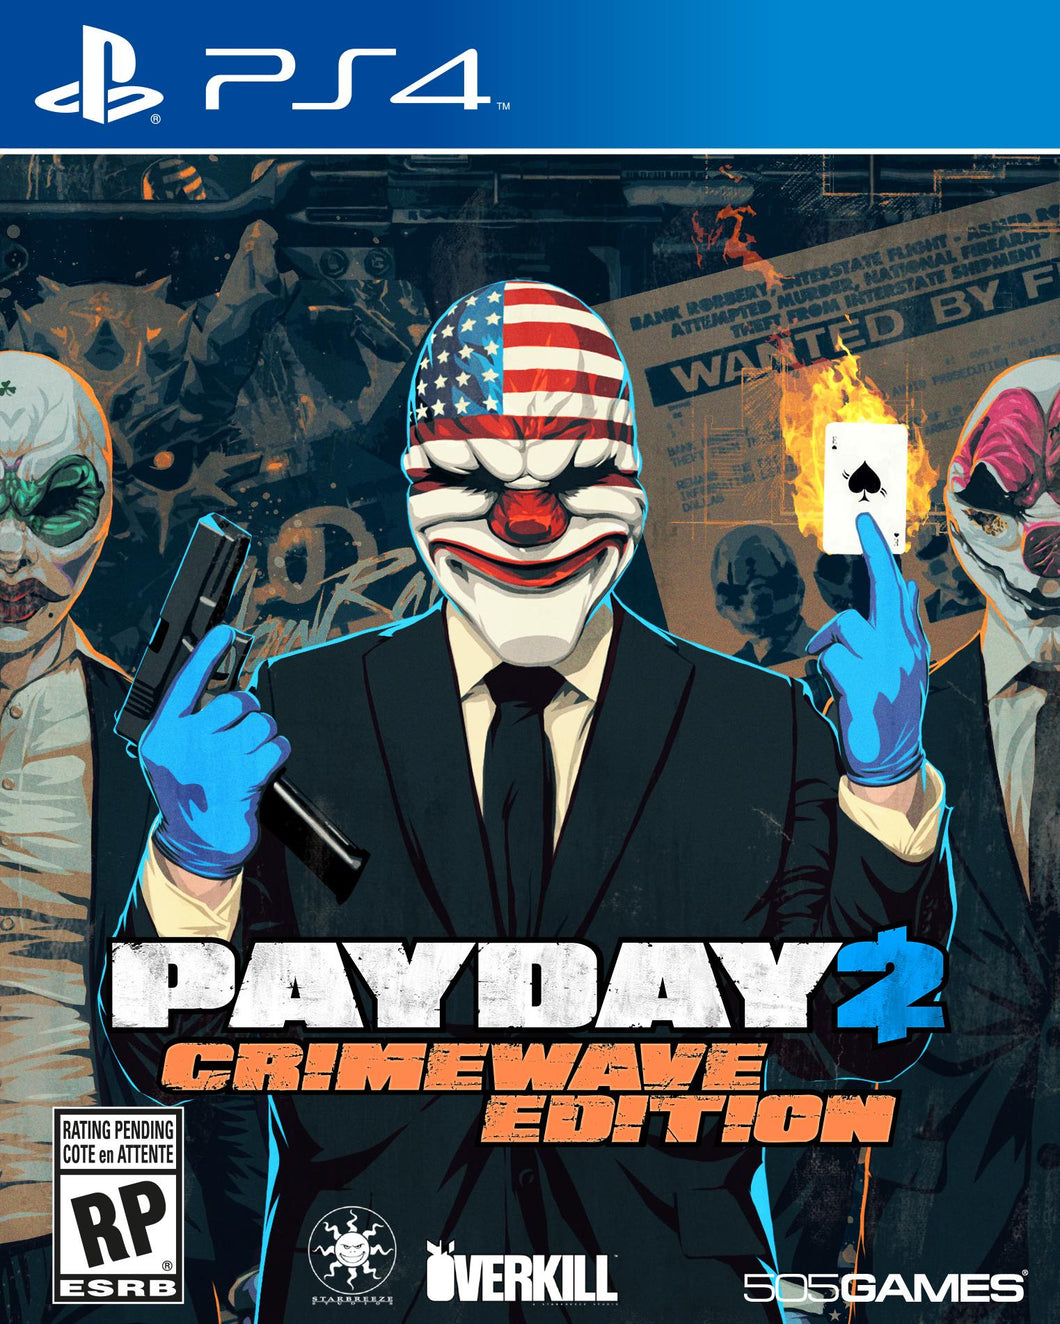 Jogo PS4 - Payday 2: Crimewave Edition